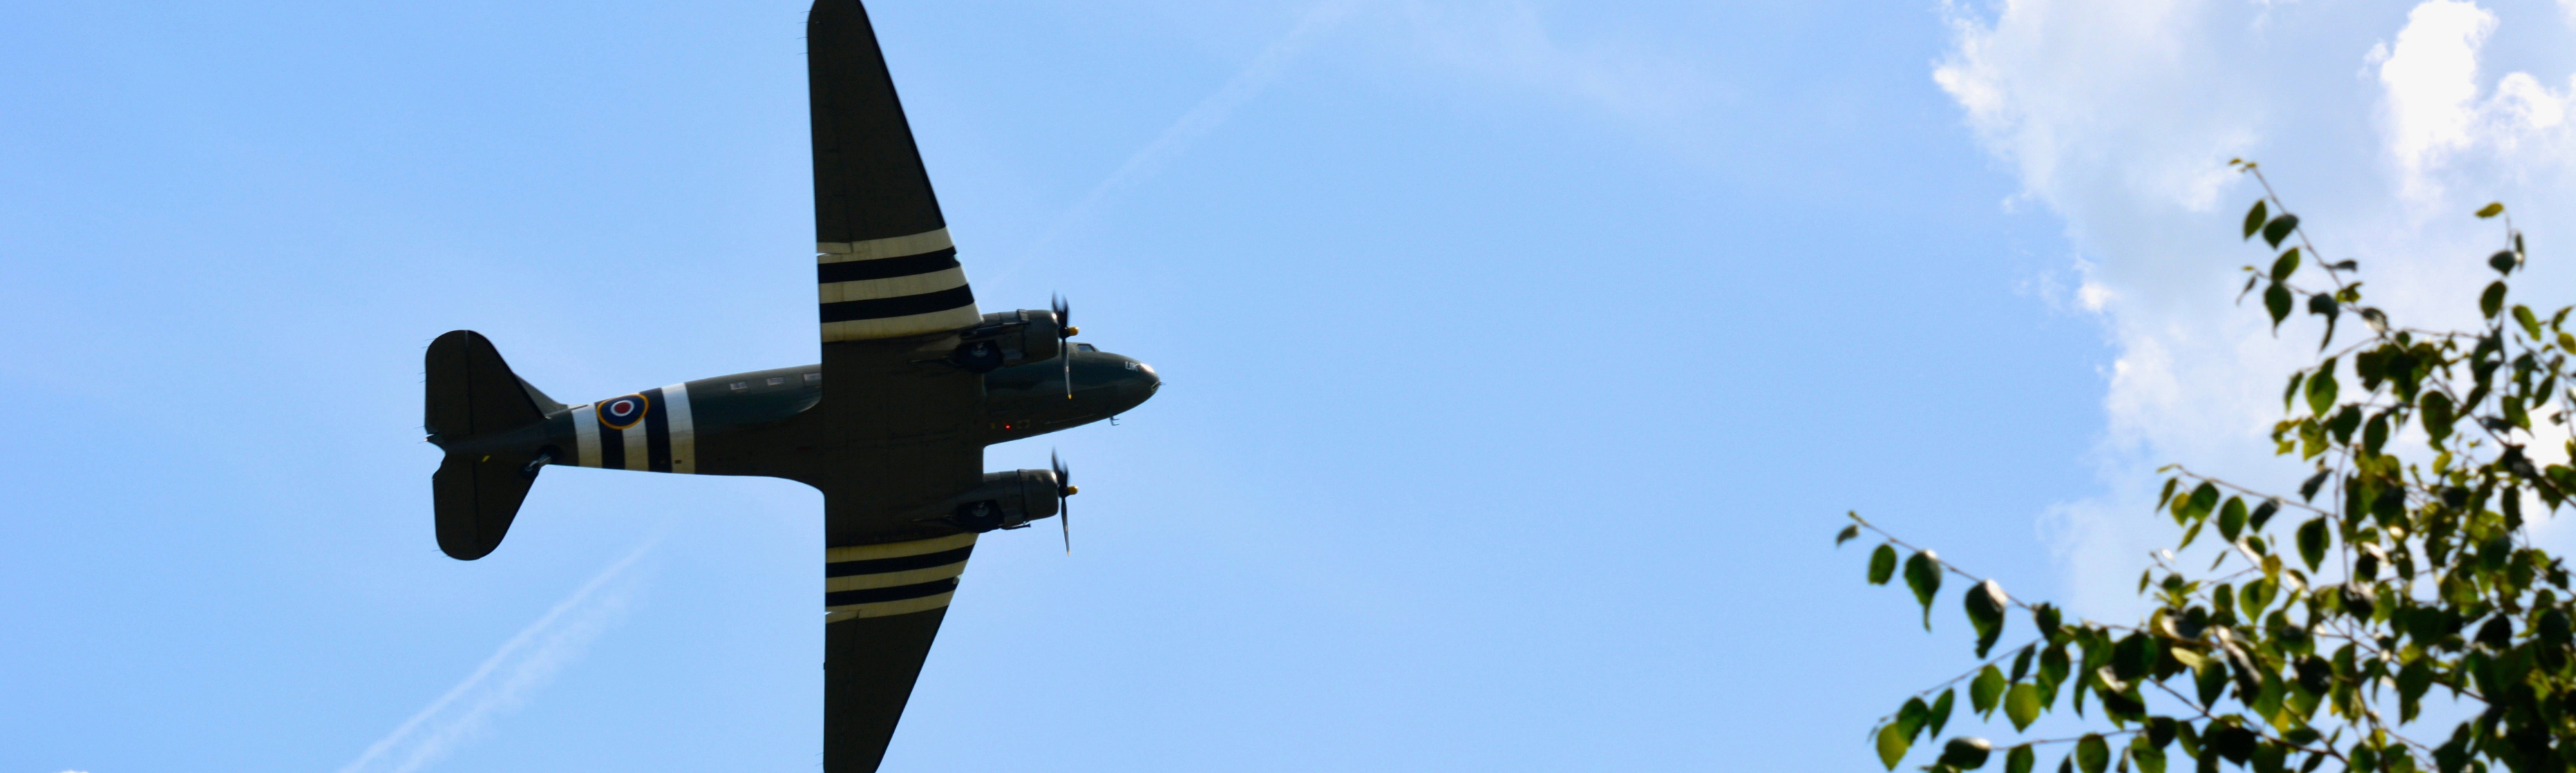 Old Aircraft over Crich Village Fete